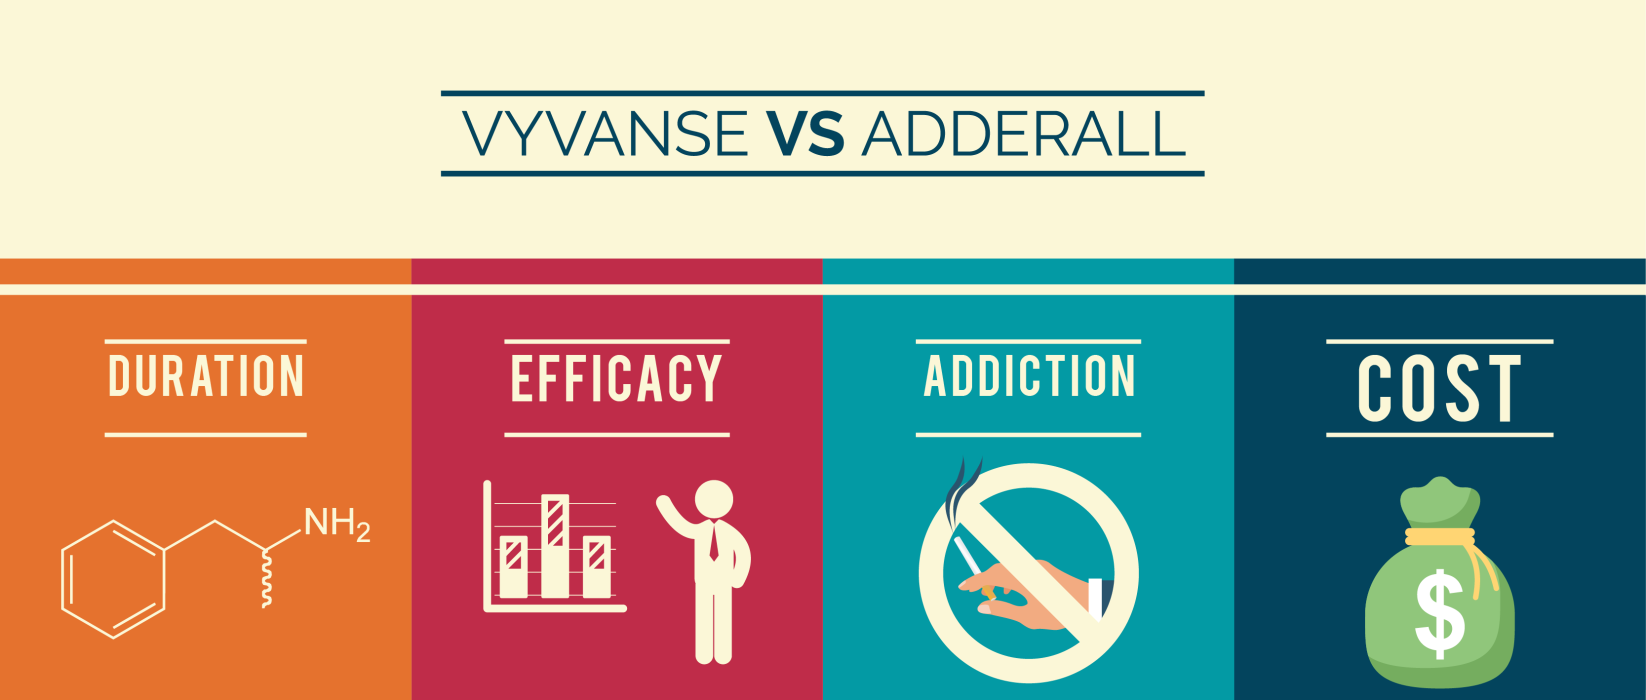 vyvanse product analysis Vyvanse contains lisdexamfetamine, a prodrug of amphetamine, a schedule ii controlled substance abuse cns stimulants, including vyvanse, other amphetamines, and methylphenidate-containing products have a high potential for abuse.